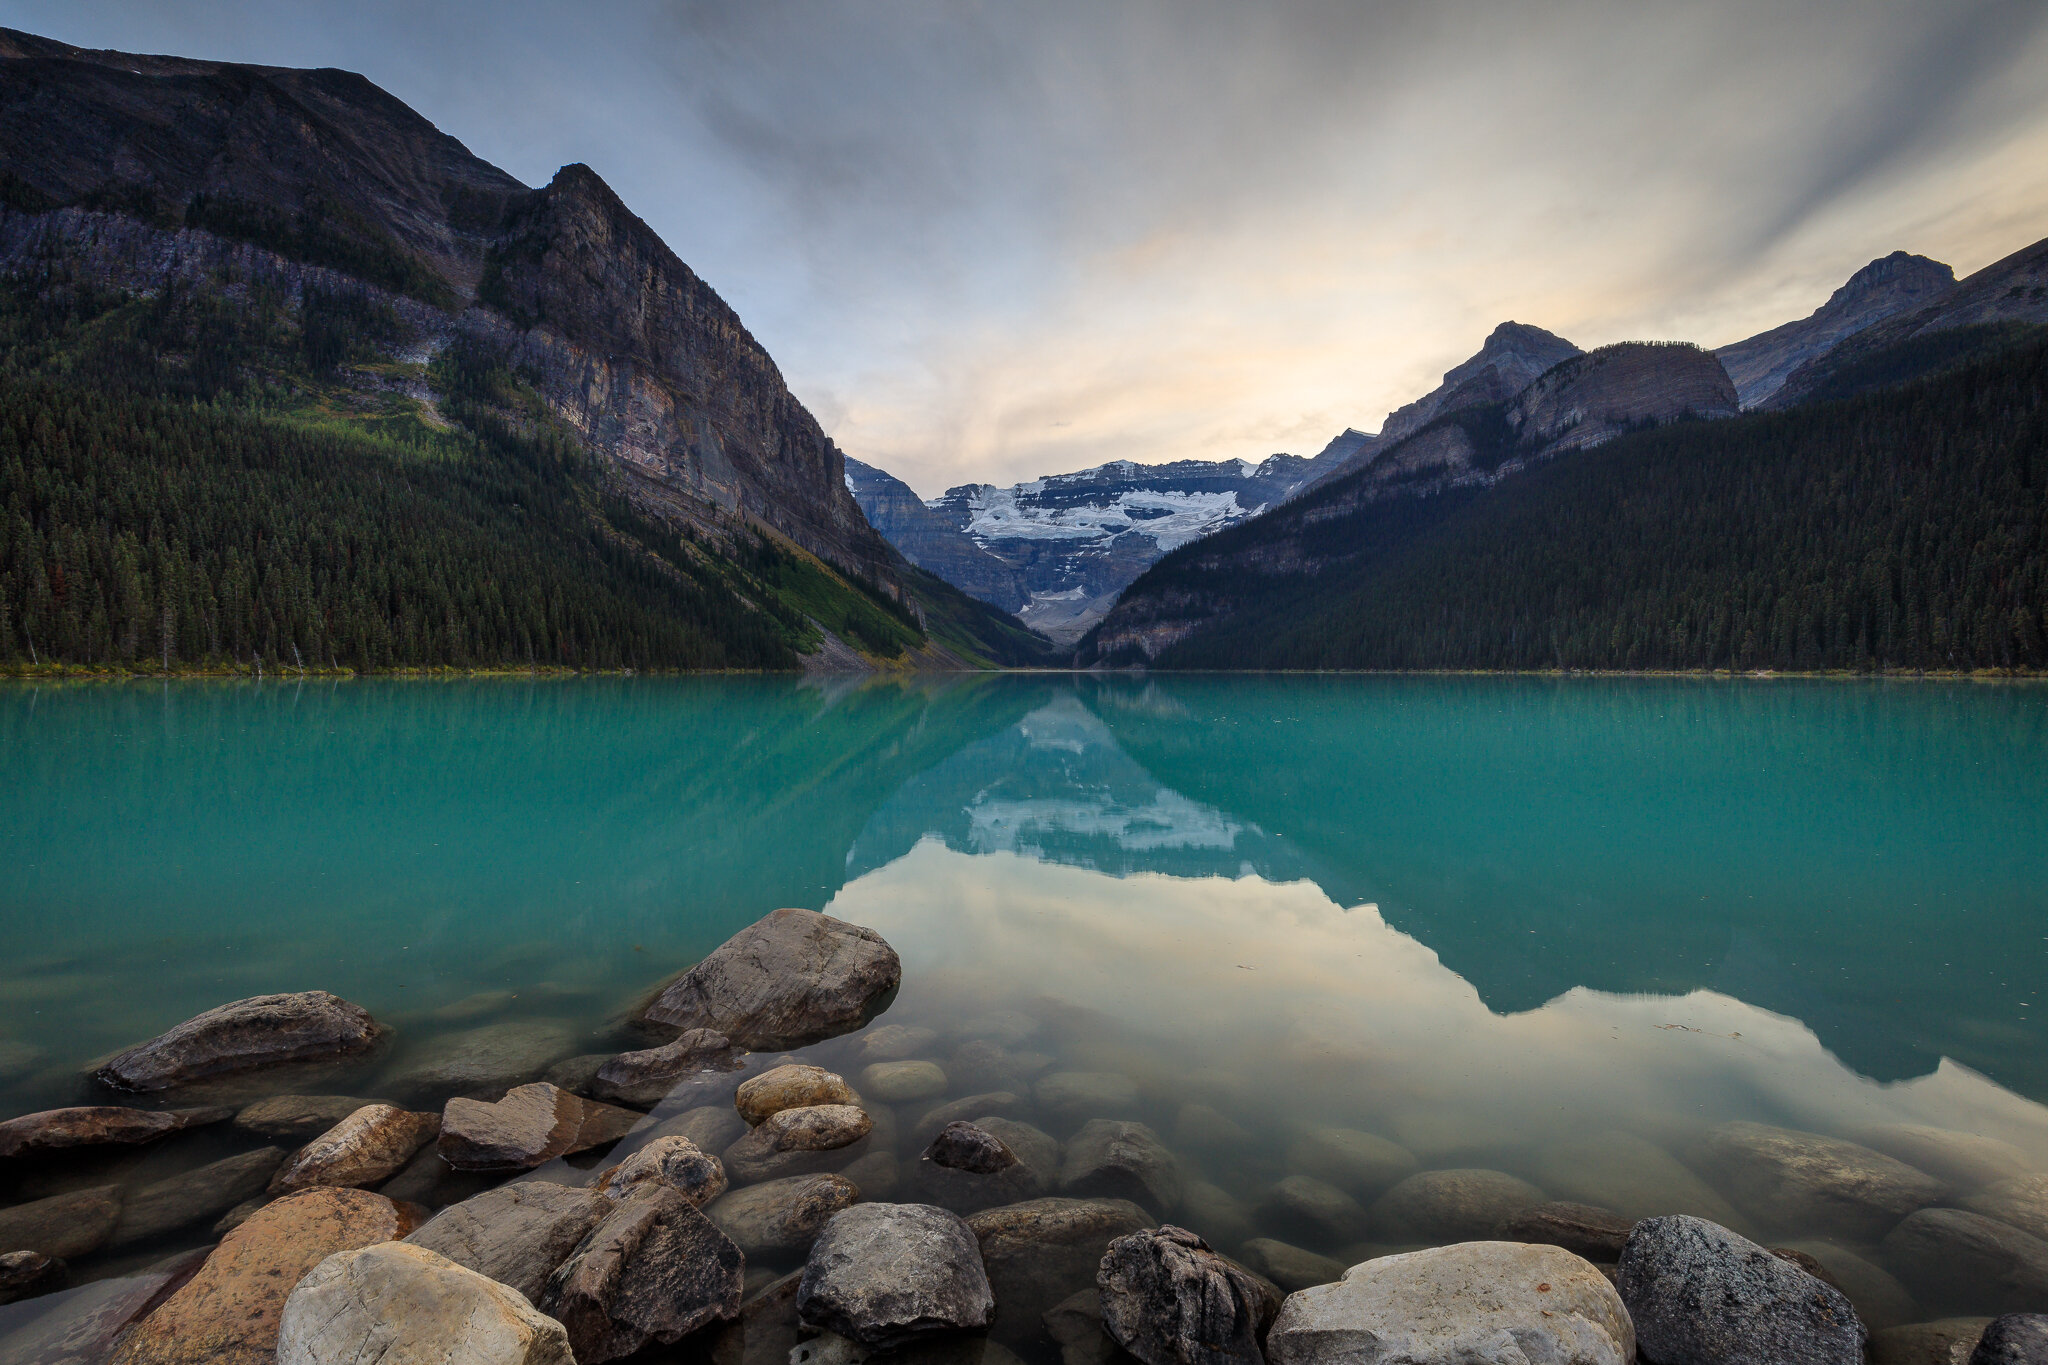 A calm evening at Lake Louise, Alberta